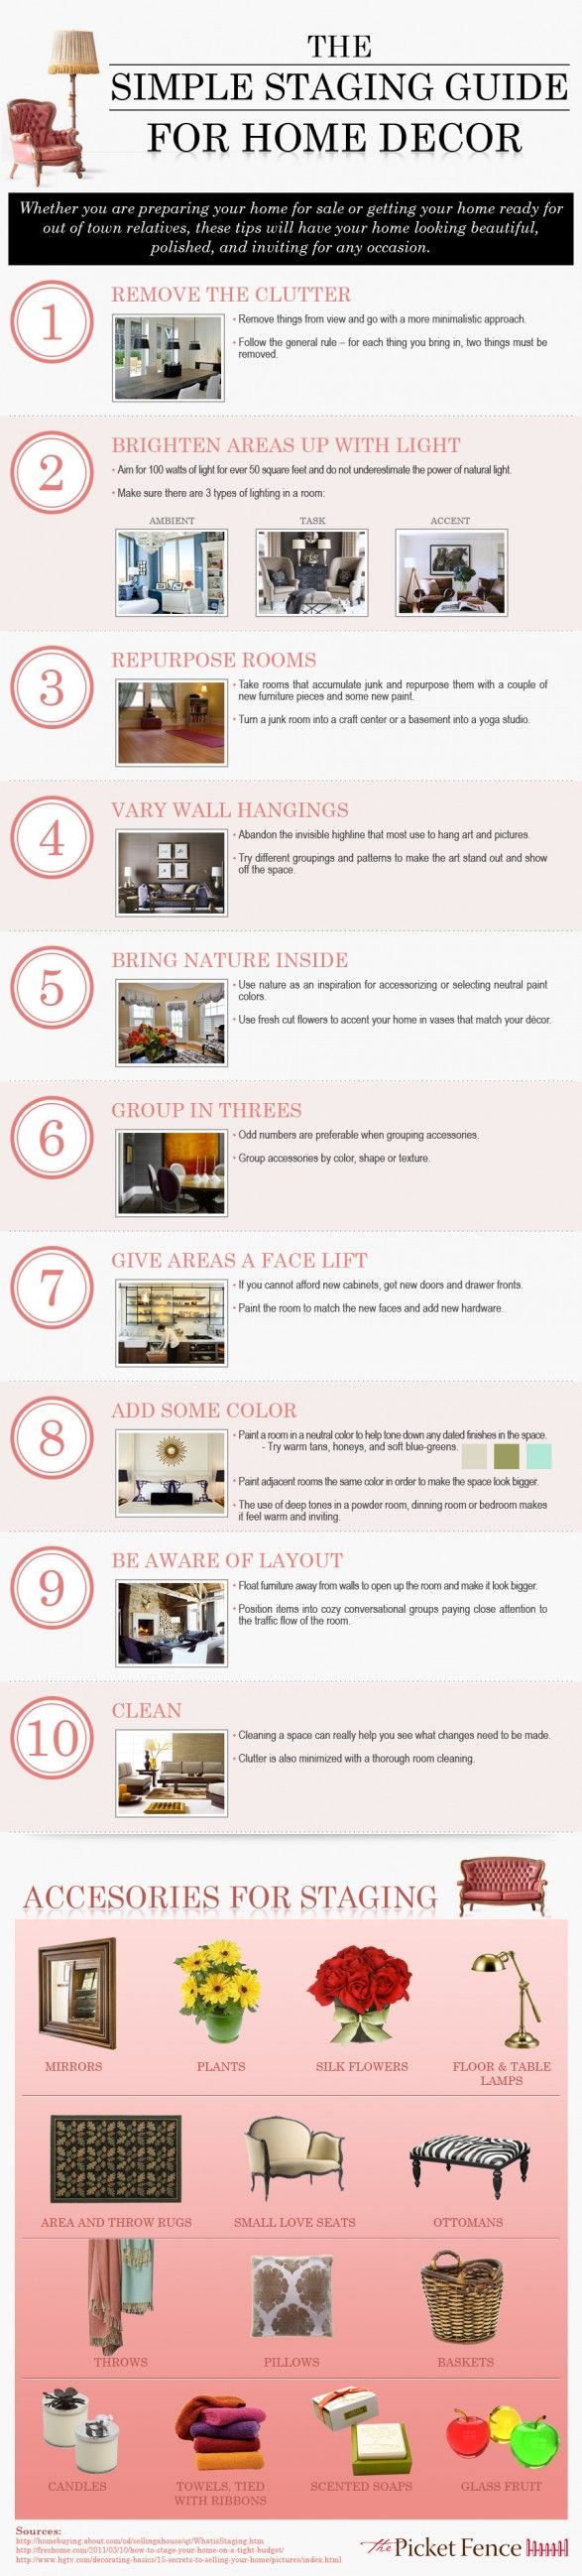 Buying your first home together reco website - The Simple Staging Guide For Home Decor